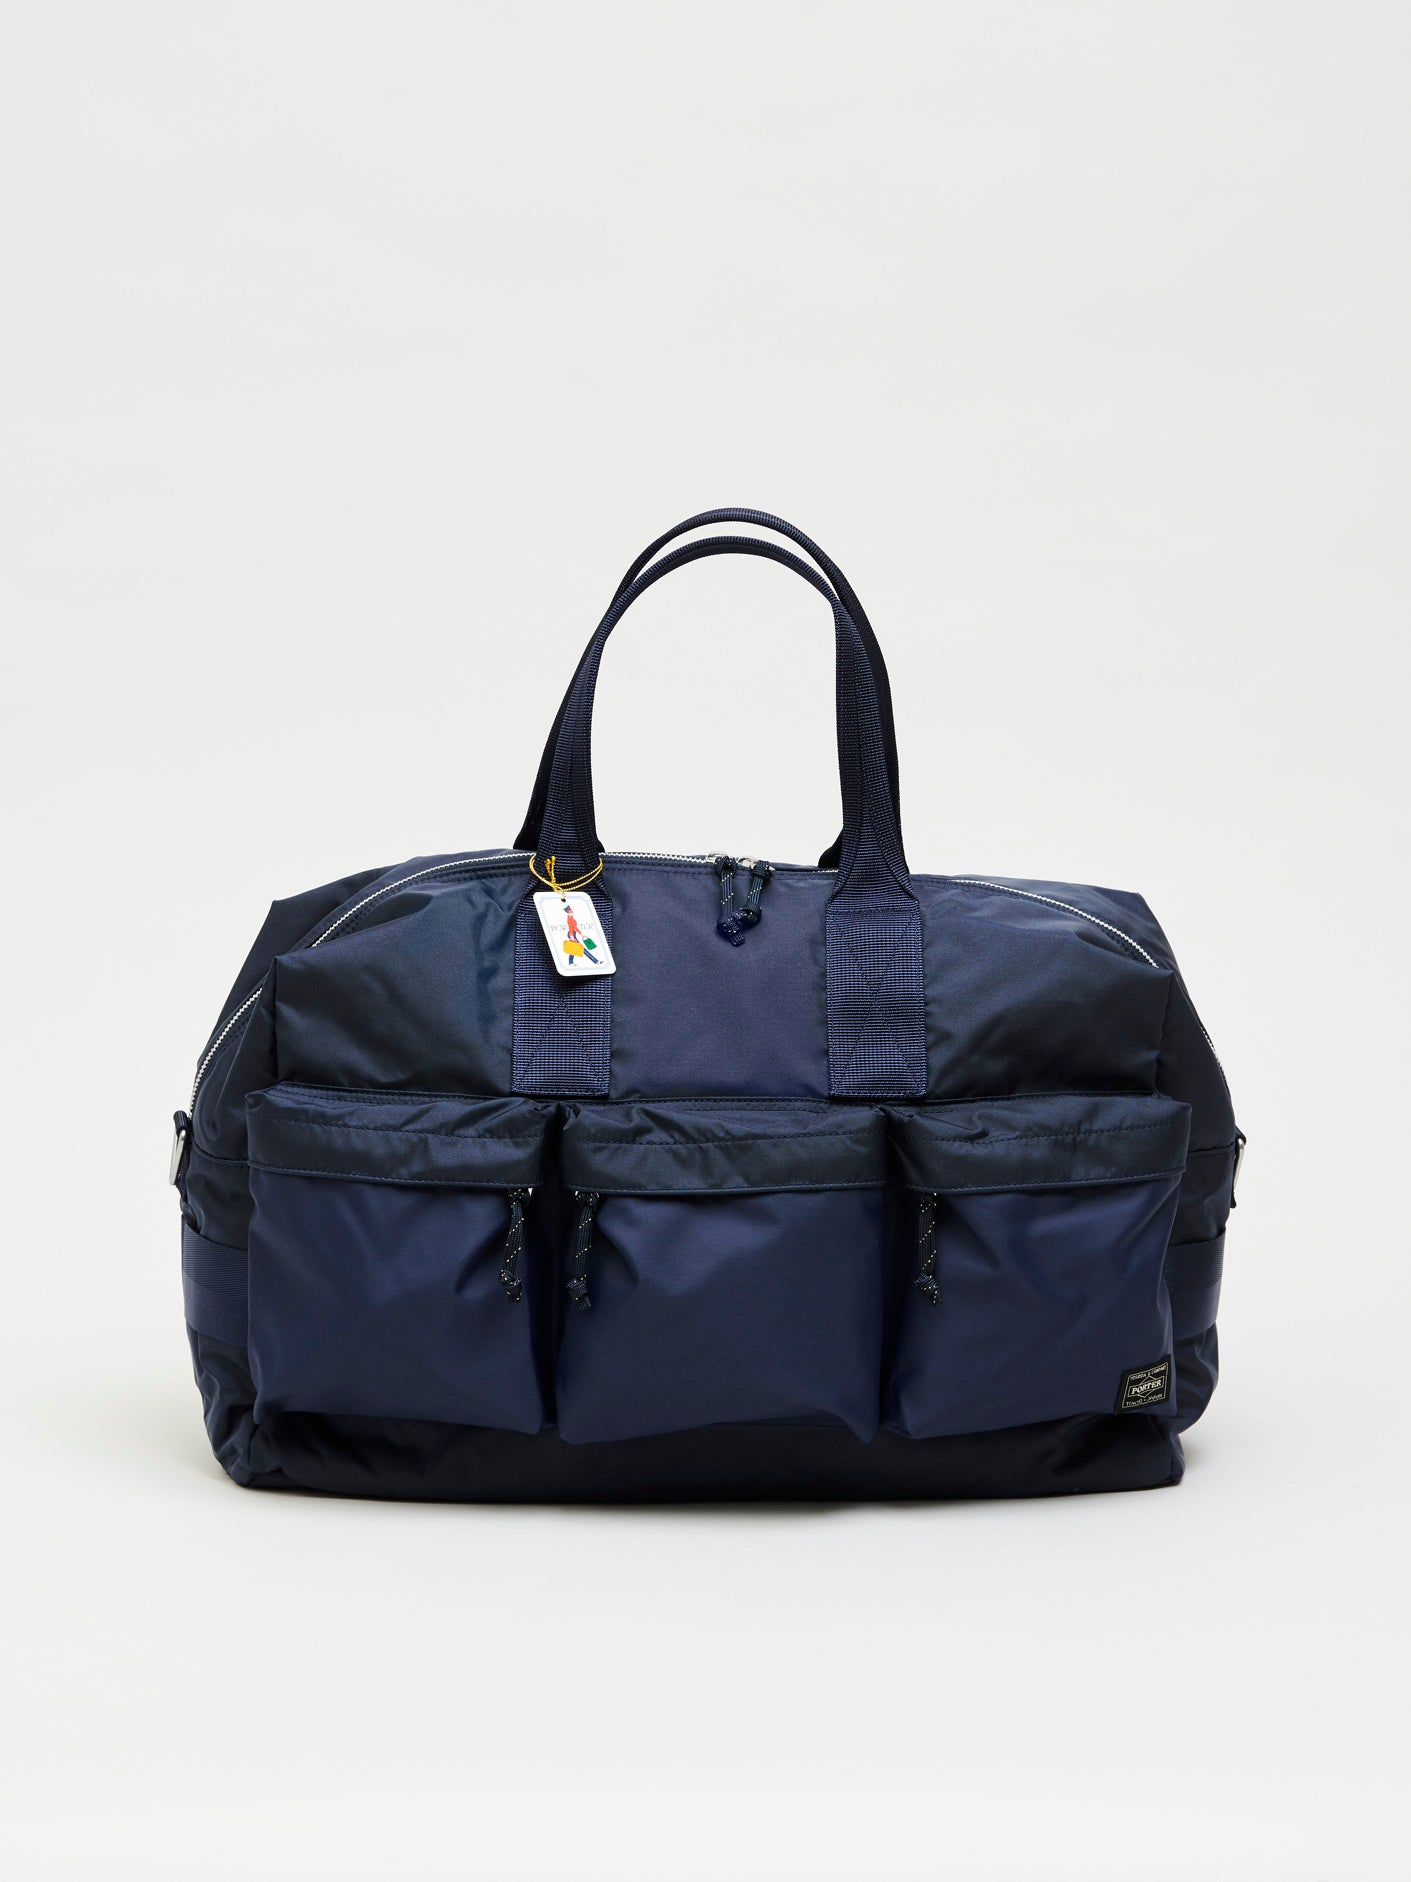 Force 2way Duffle Bag, Navy Blue - Goods